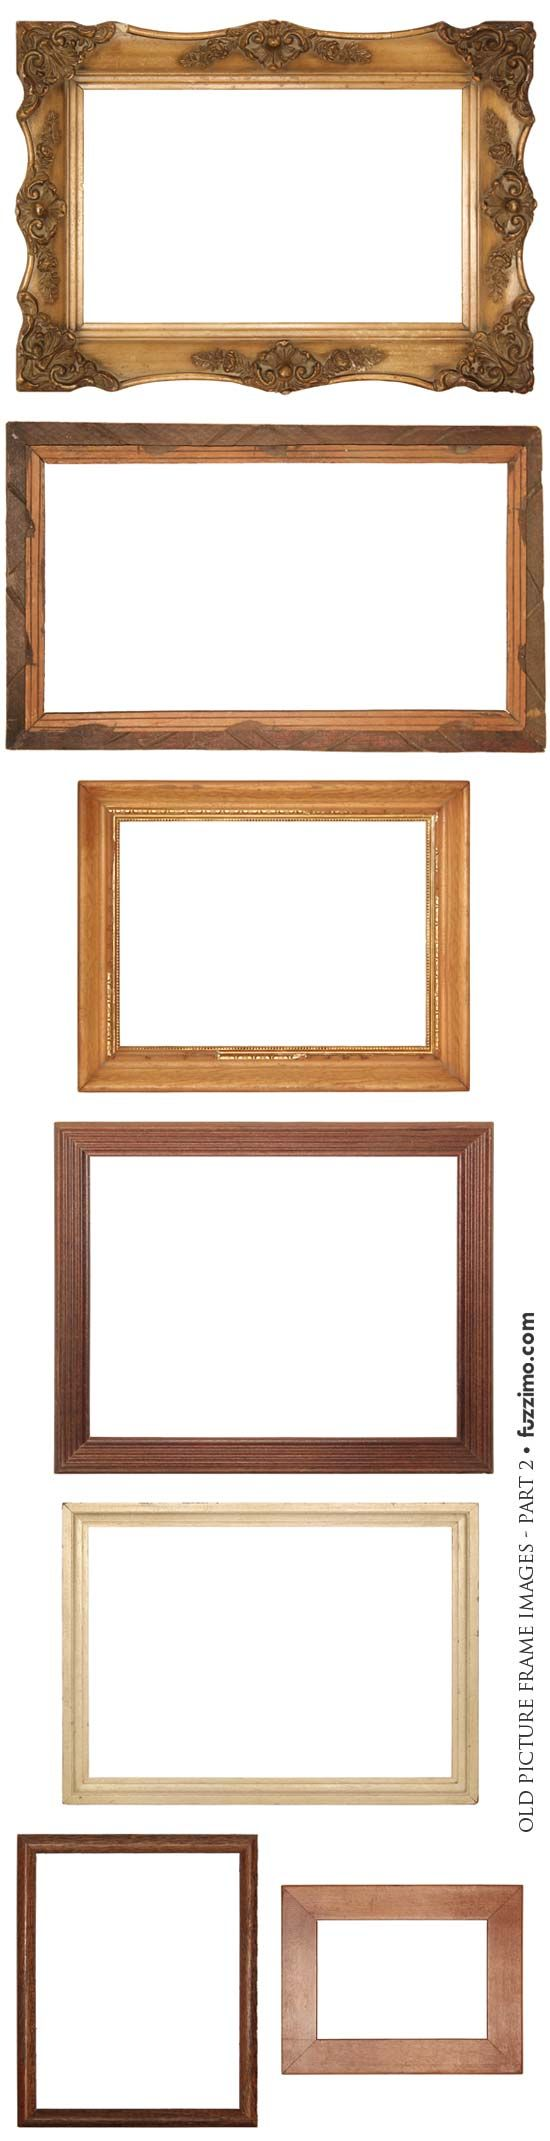 free hi-res old picture frame images